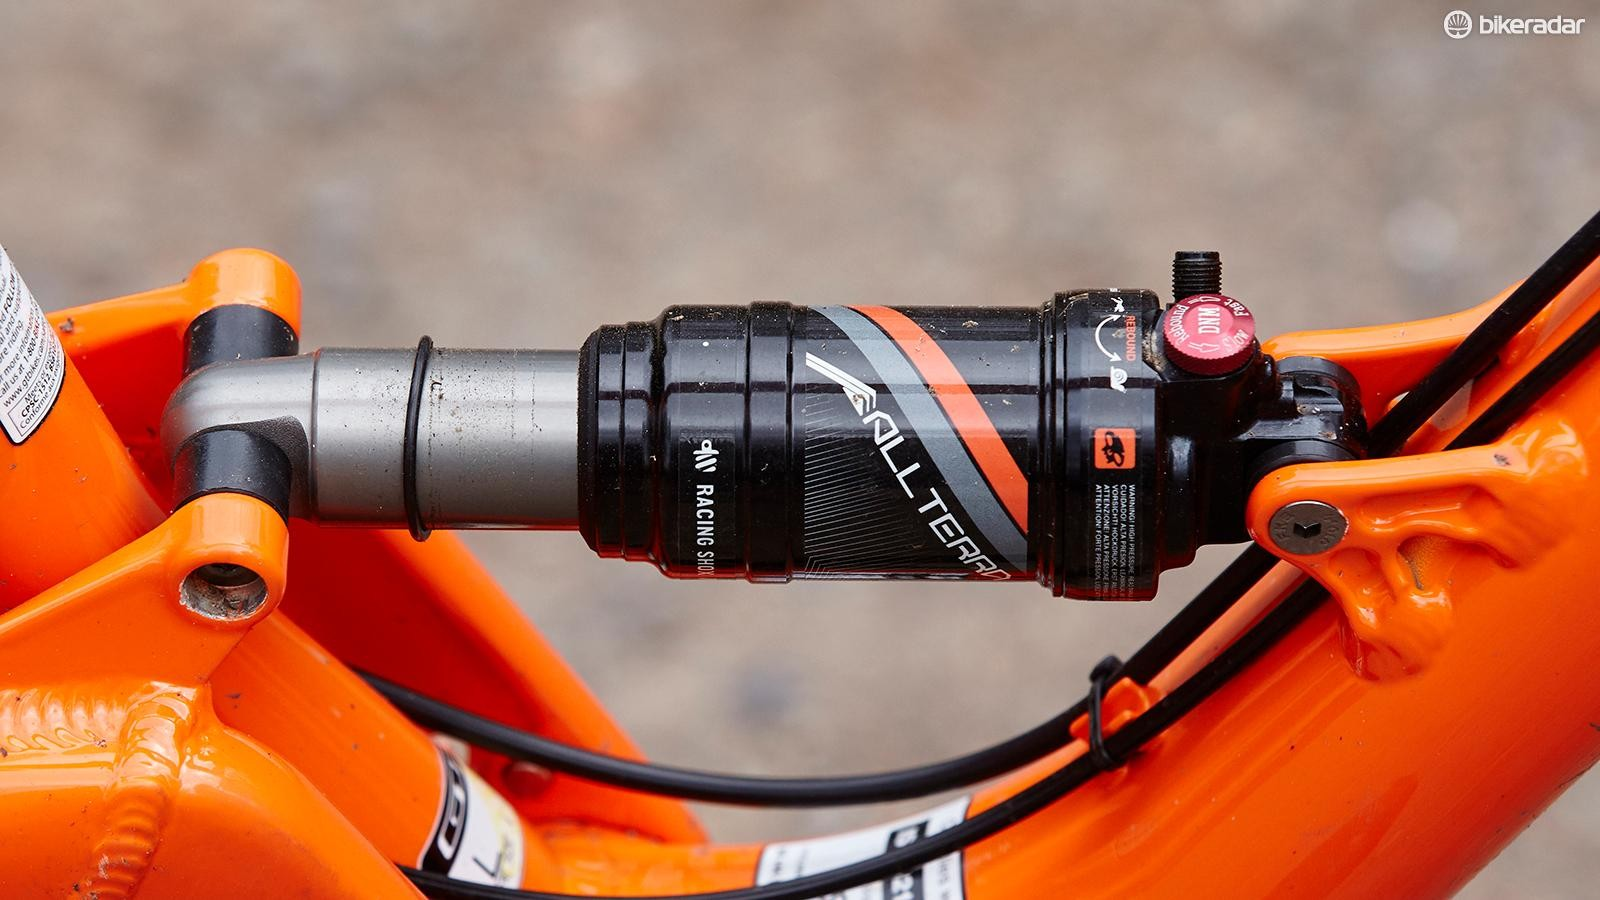 The Verb runs a custom-built air shock that's actually pretty smooth if you set it up right